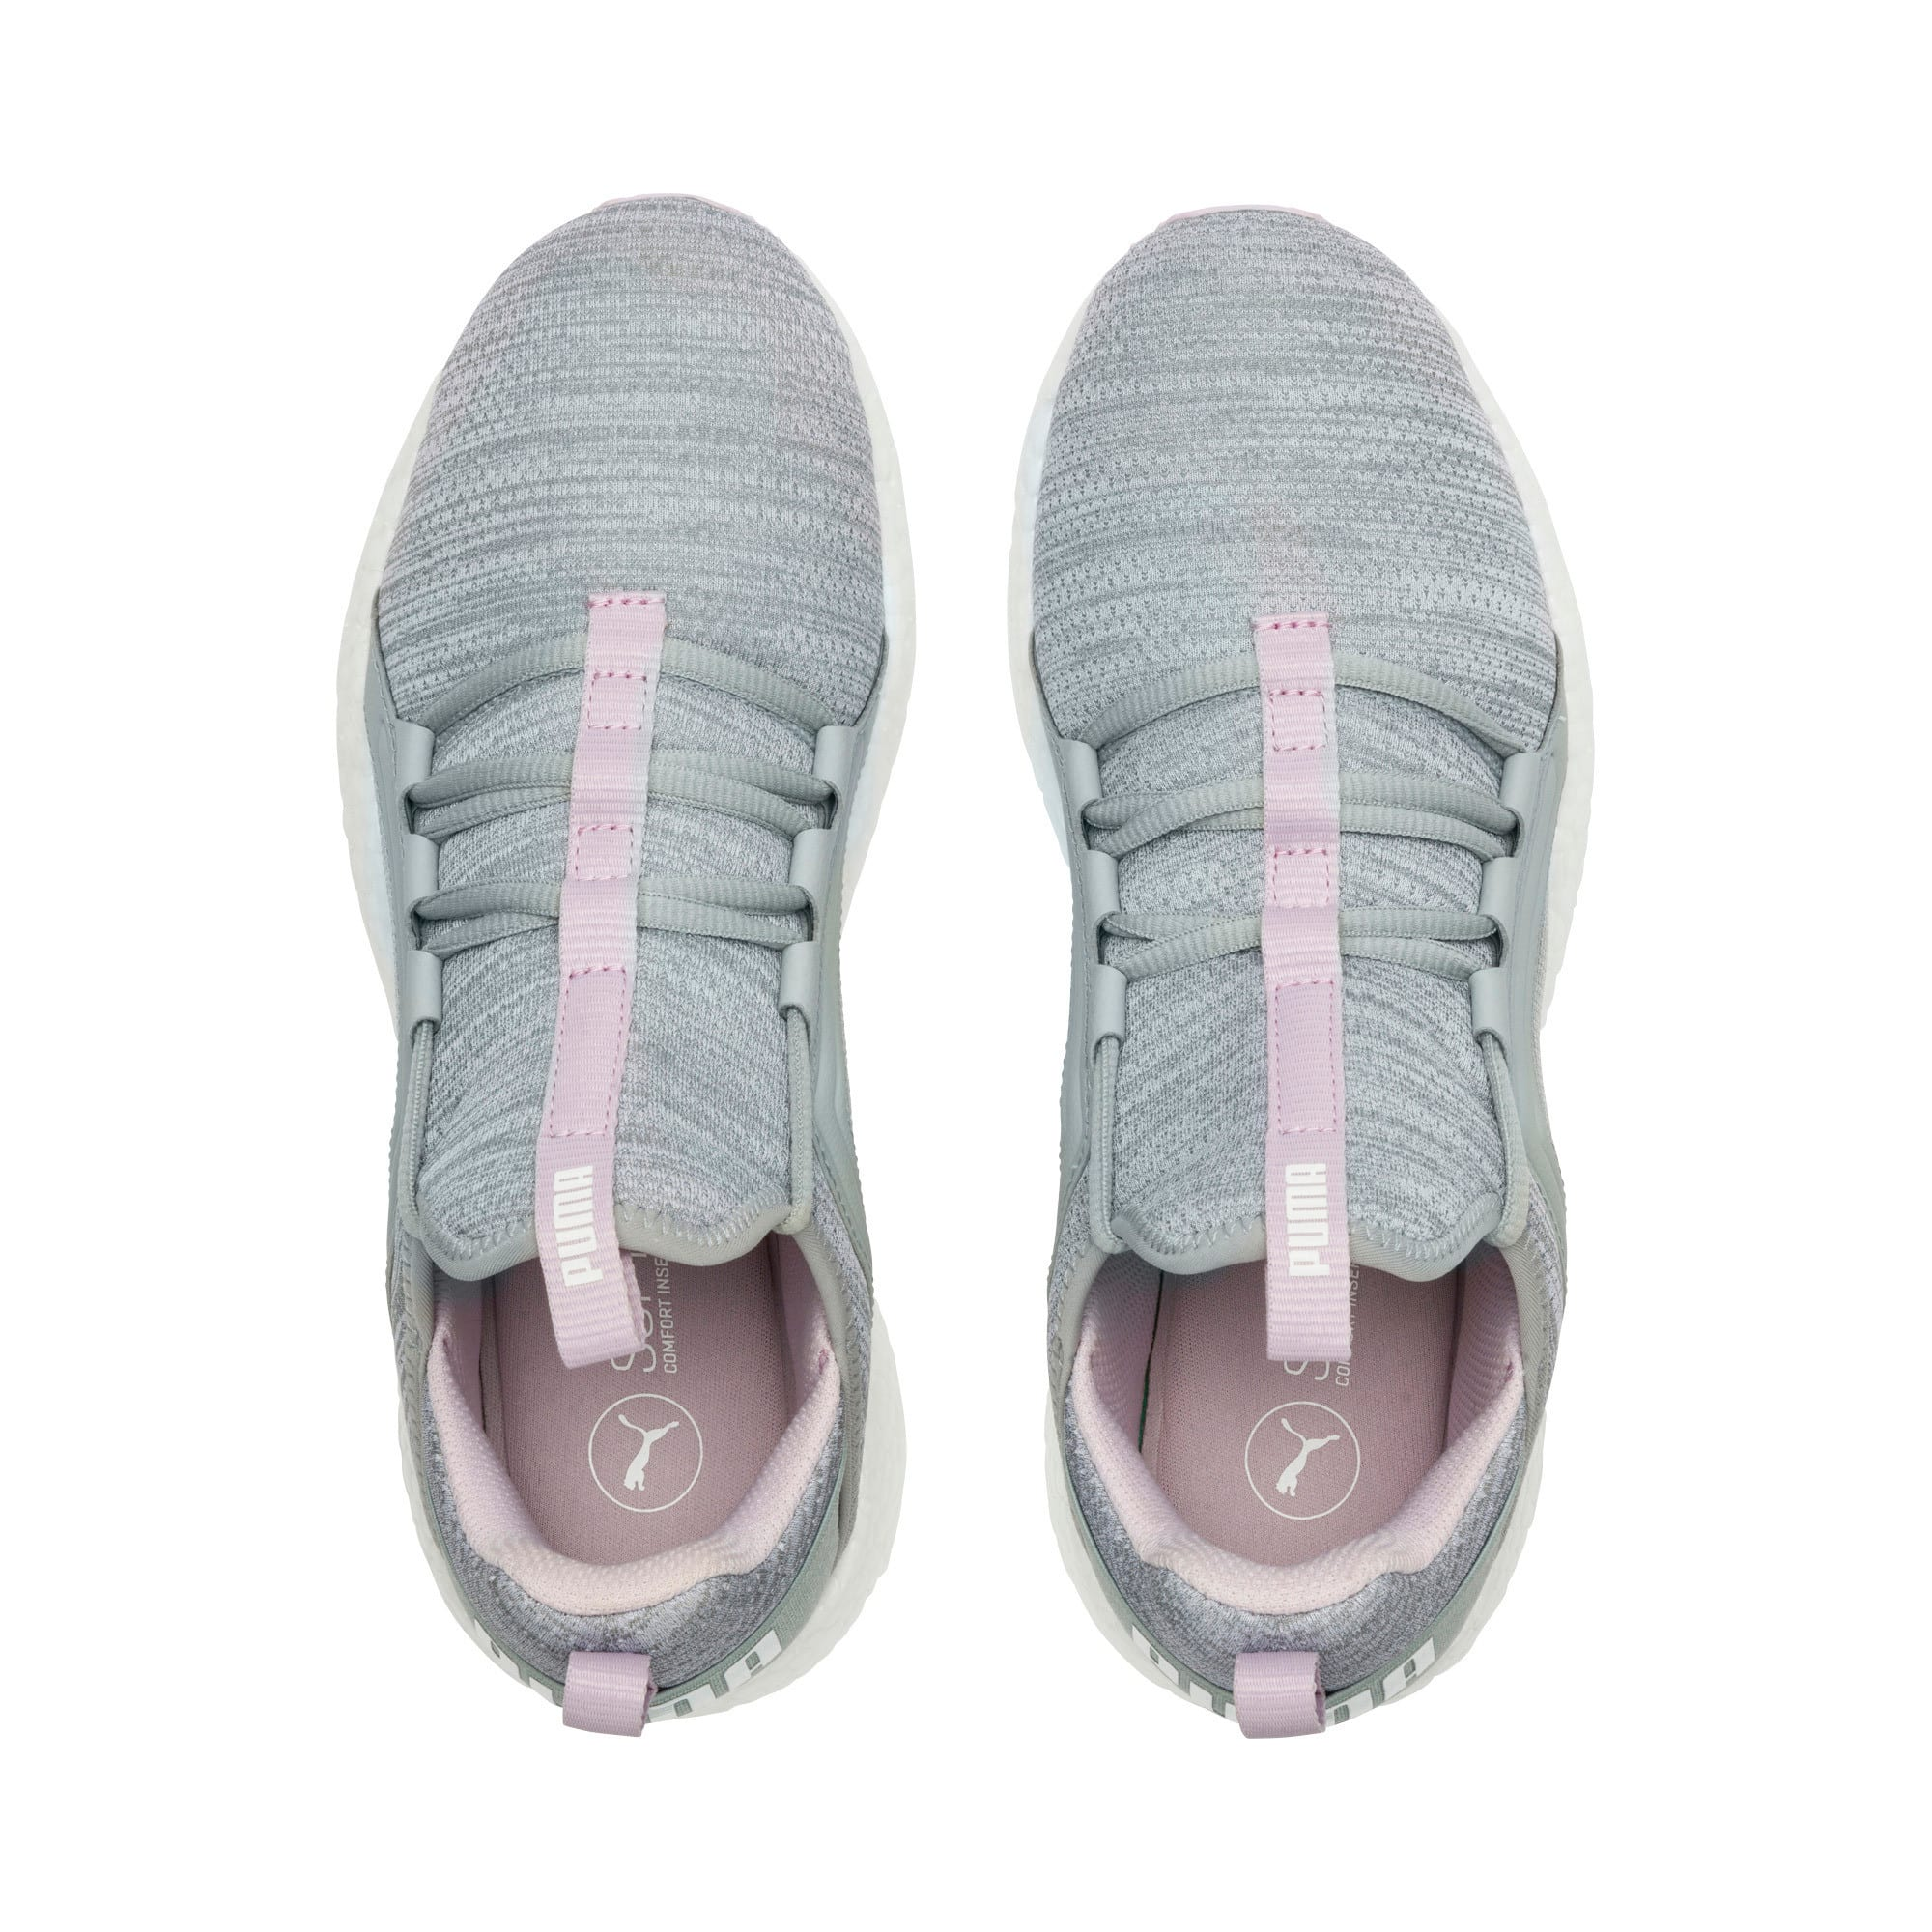 Thumbnail 6 of Mega Energy Heather Knit Women's Running Shoes, Quarry-Winsome Orchid-White, medium-IND